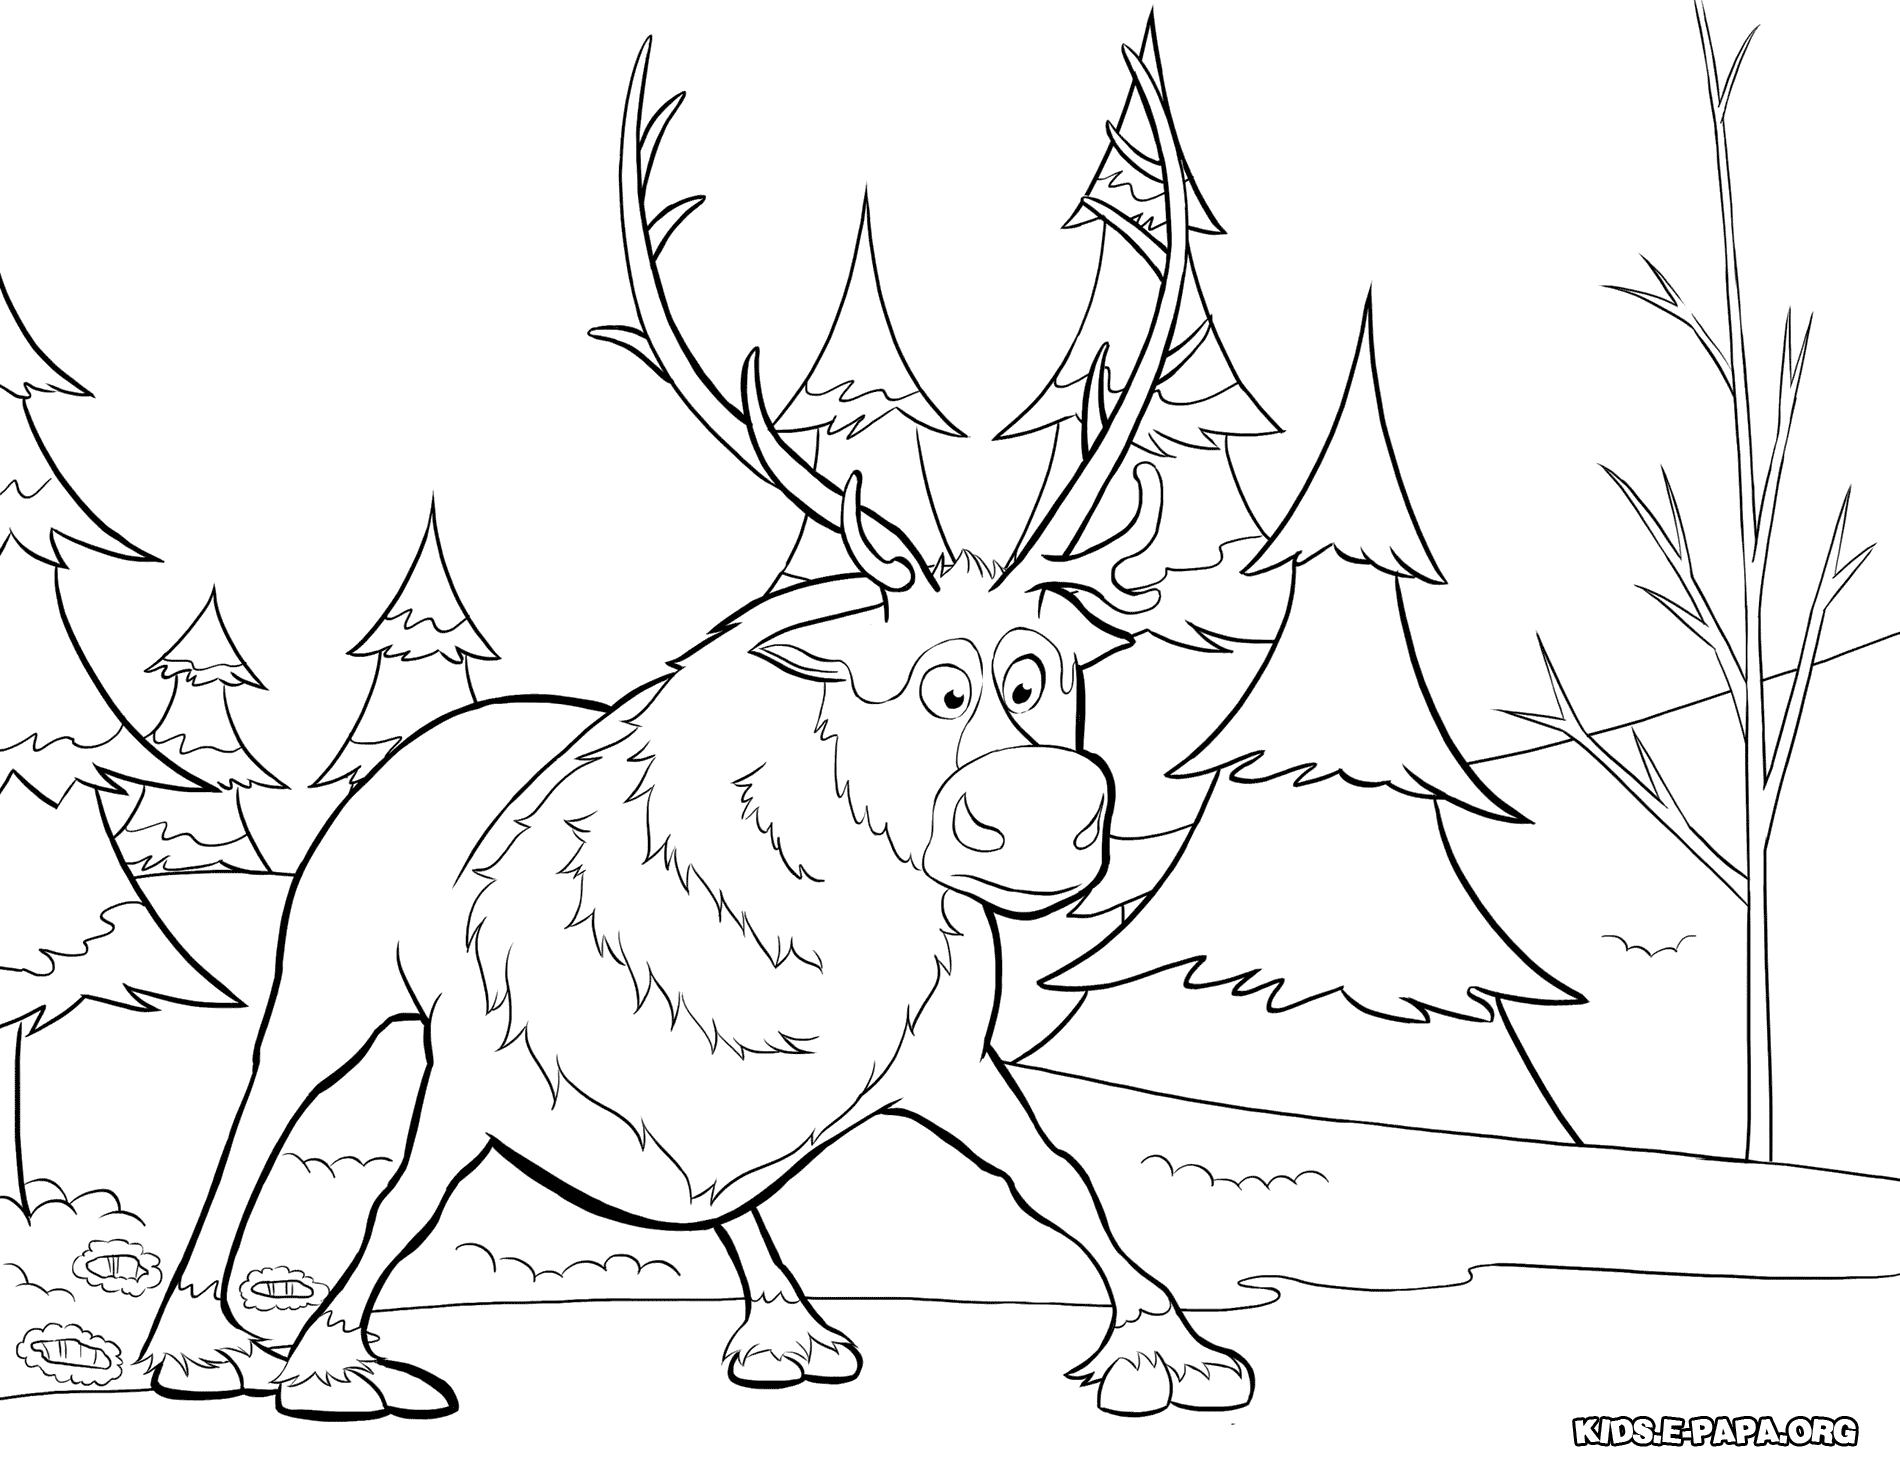 sven coloring pages kristoff and sven coloring page free printable coloring sven pages coloring